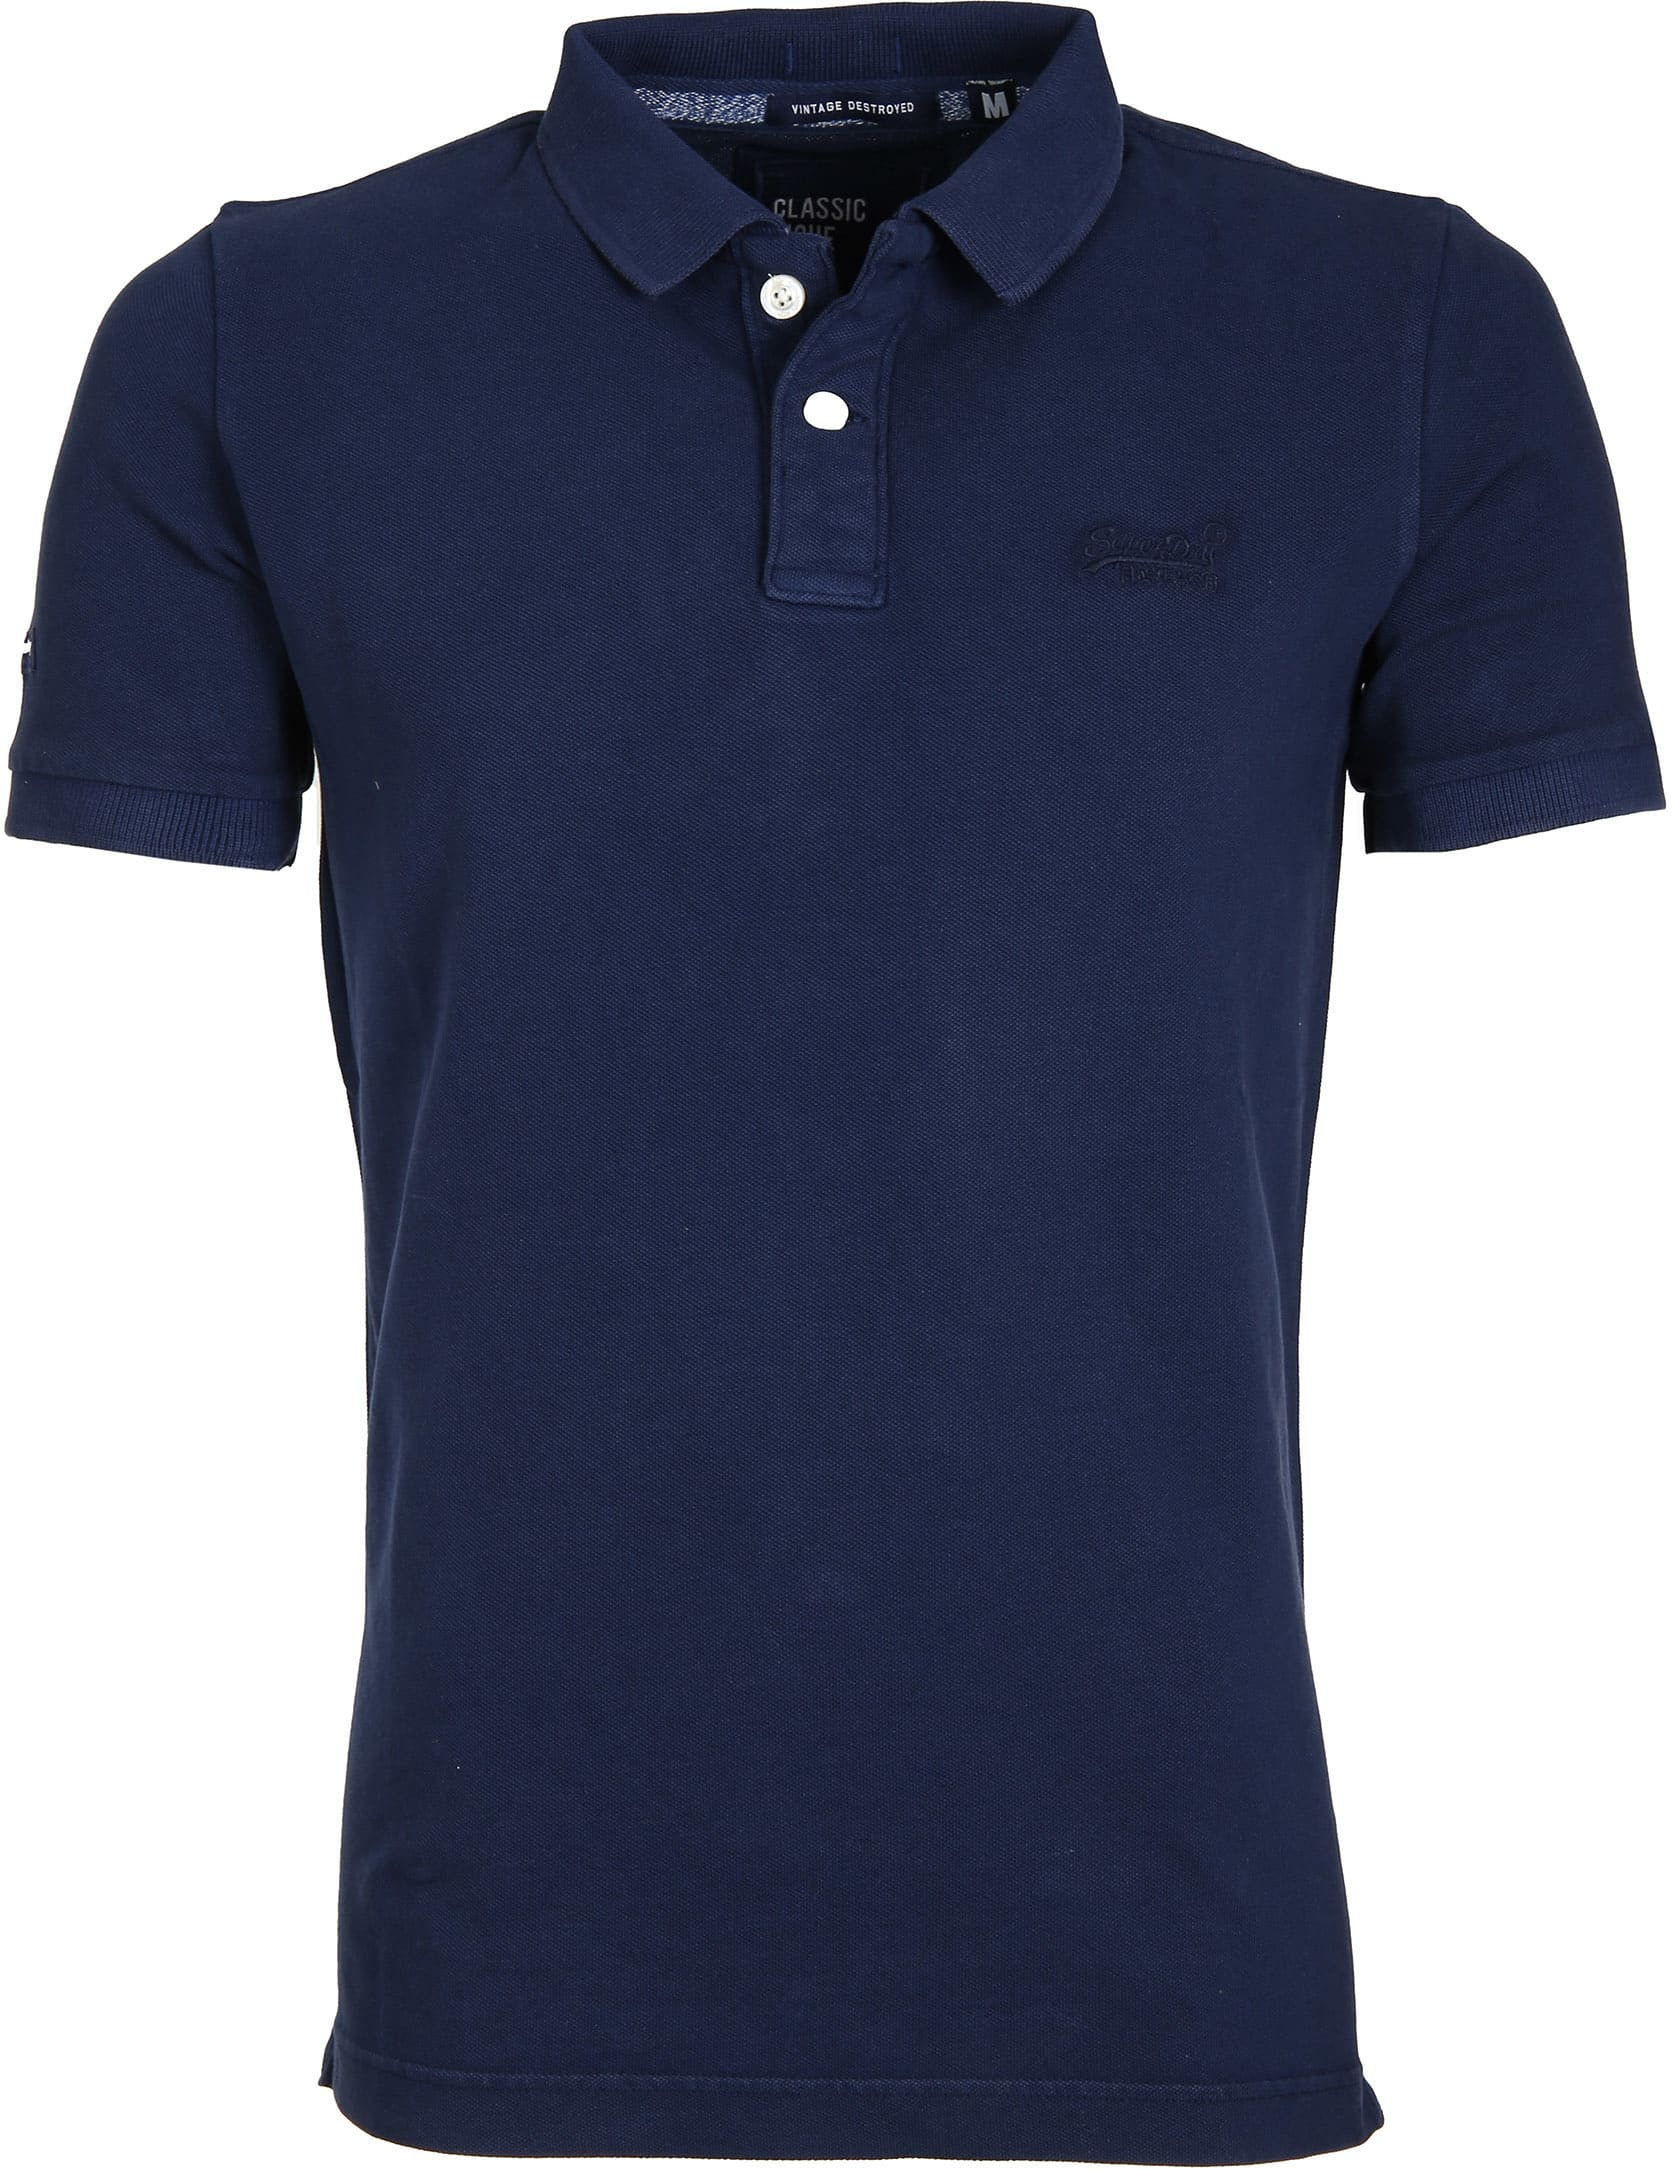 Superdry Vintage Destroyed Polo Navy foto 0